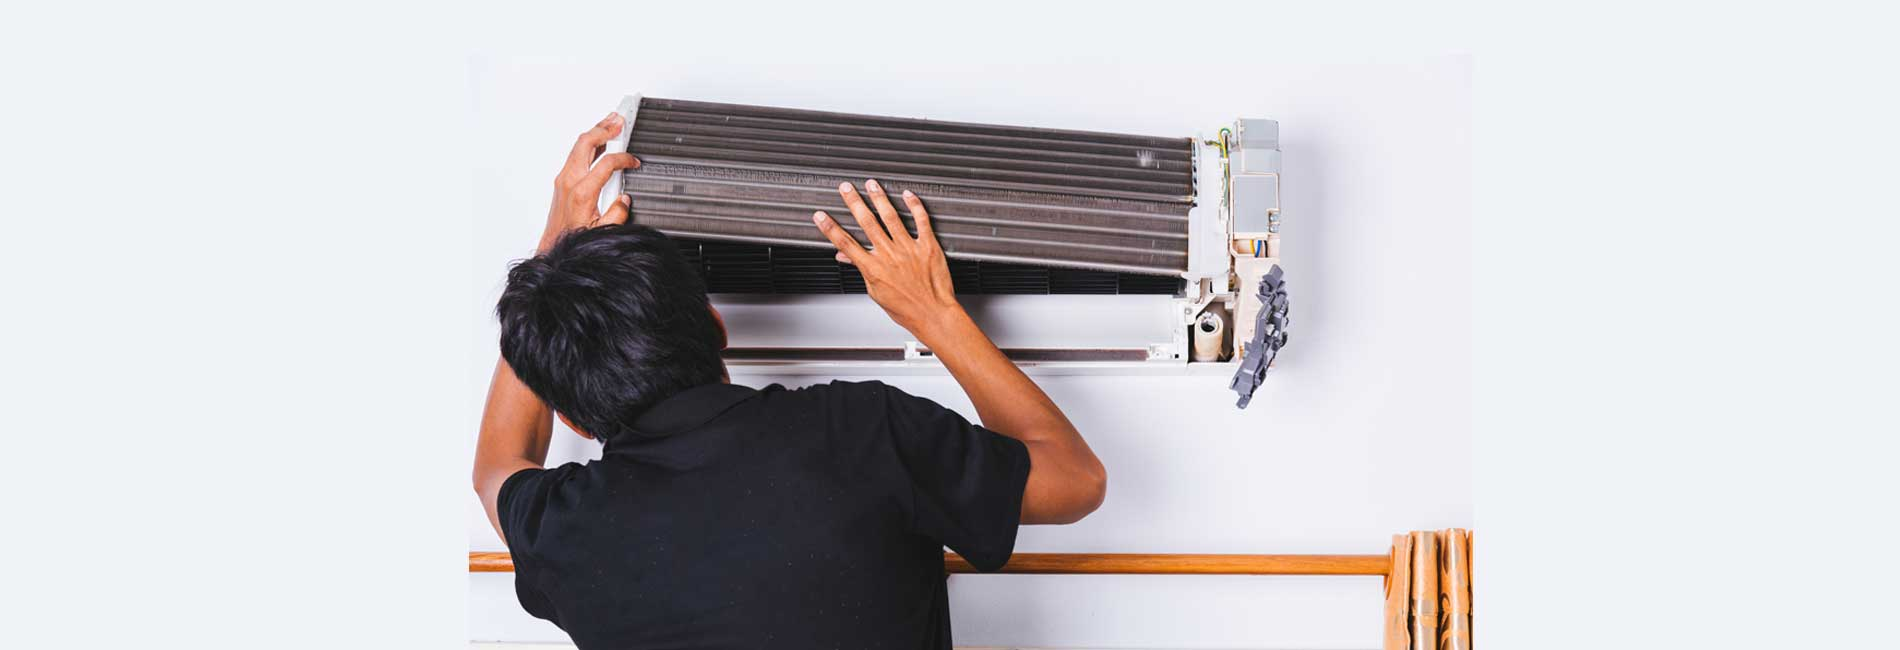 Panasonic AC Repair in Palavakkam